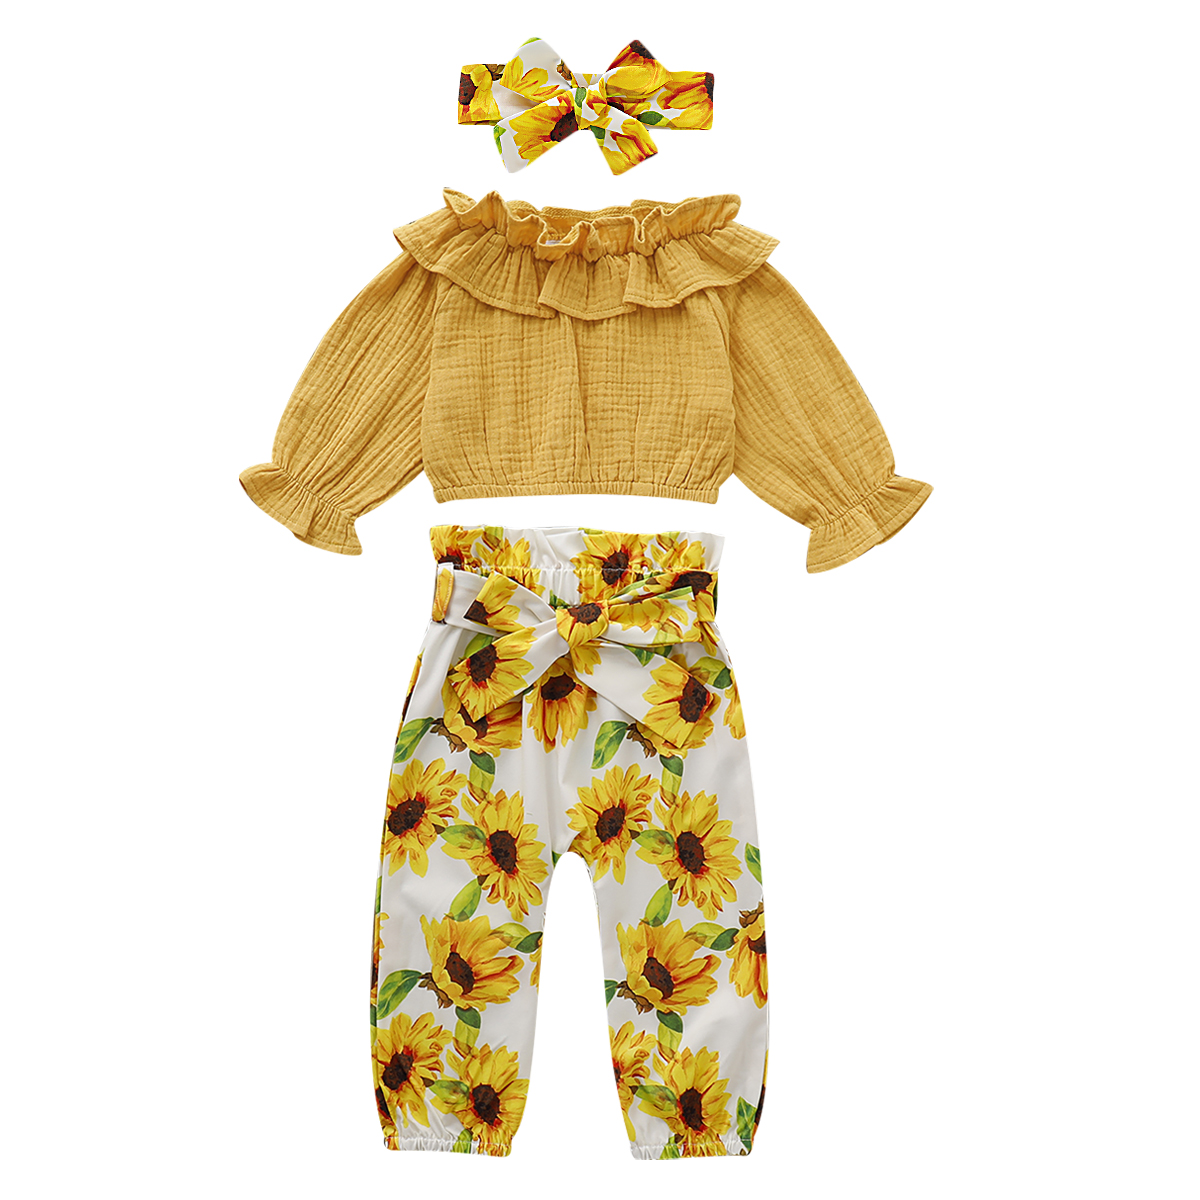 Toddler Kid Baby Girl 3pcs Clothes Ruffle Tops T Shirt Pants Trousers Outfit Set